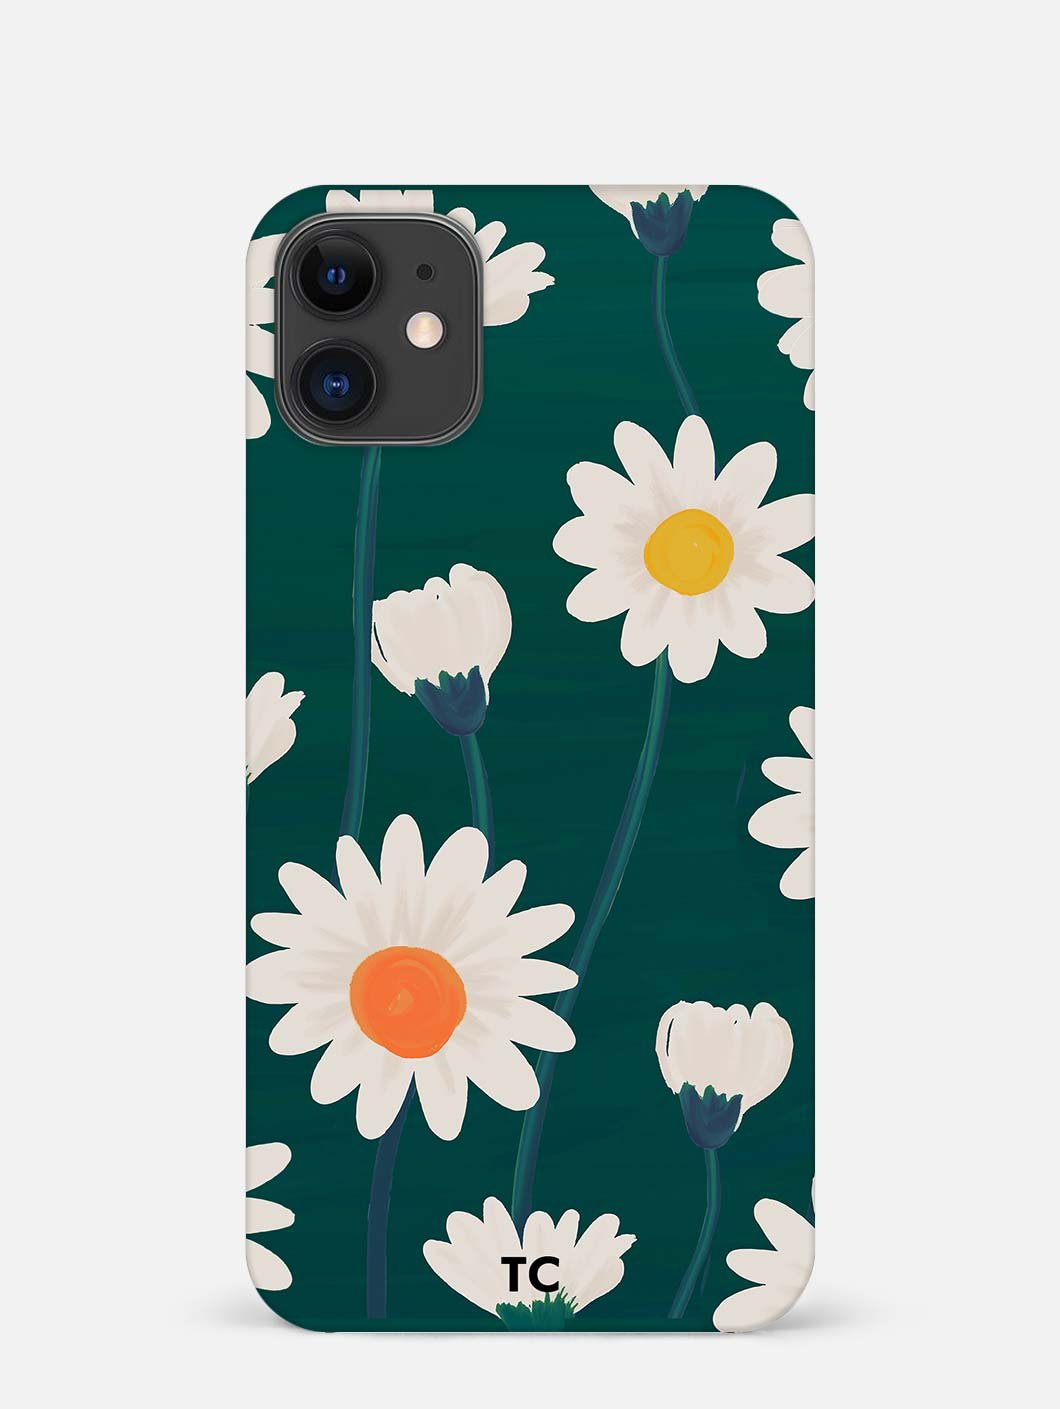 Hand Drawn Daisy iPhone 12 Mini Mobile Cover